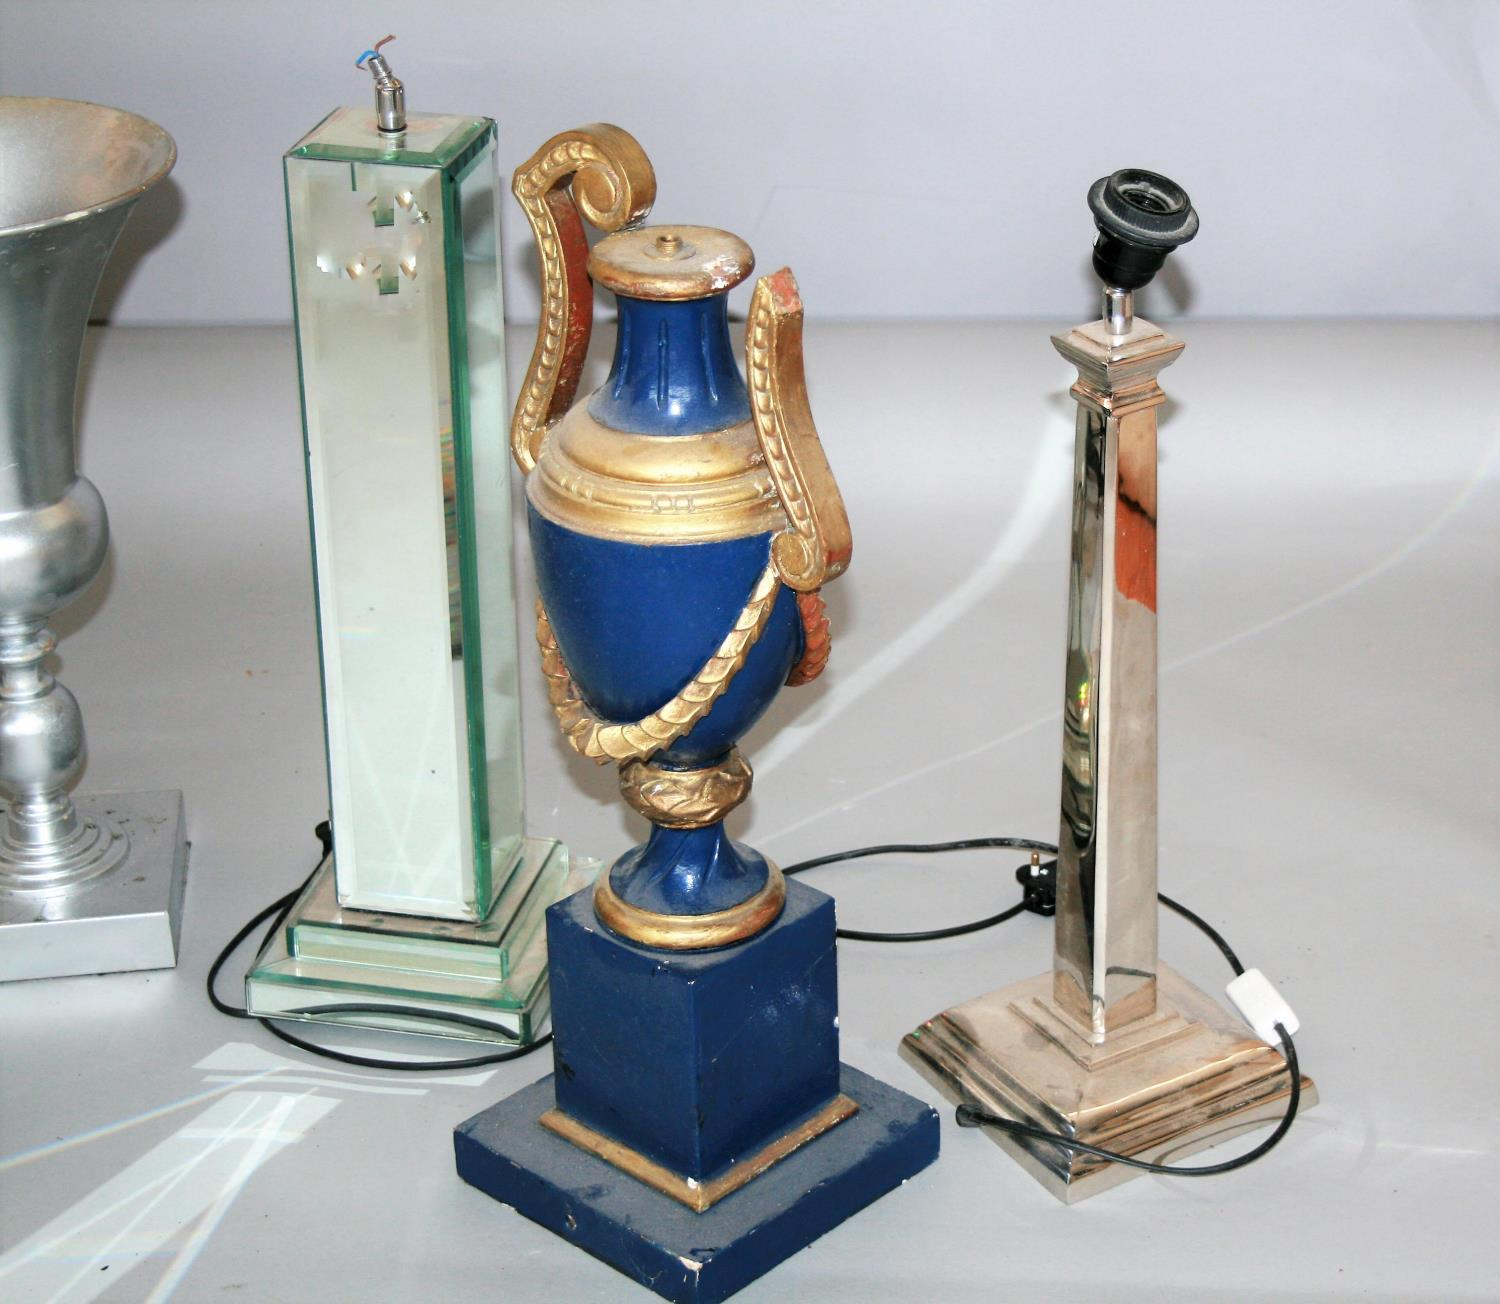 Misc. collection of antique lamps etc. - Image 2 of 5